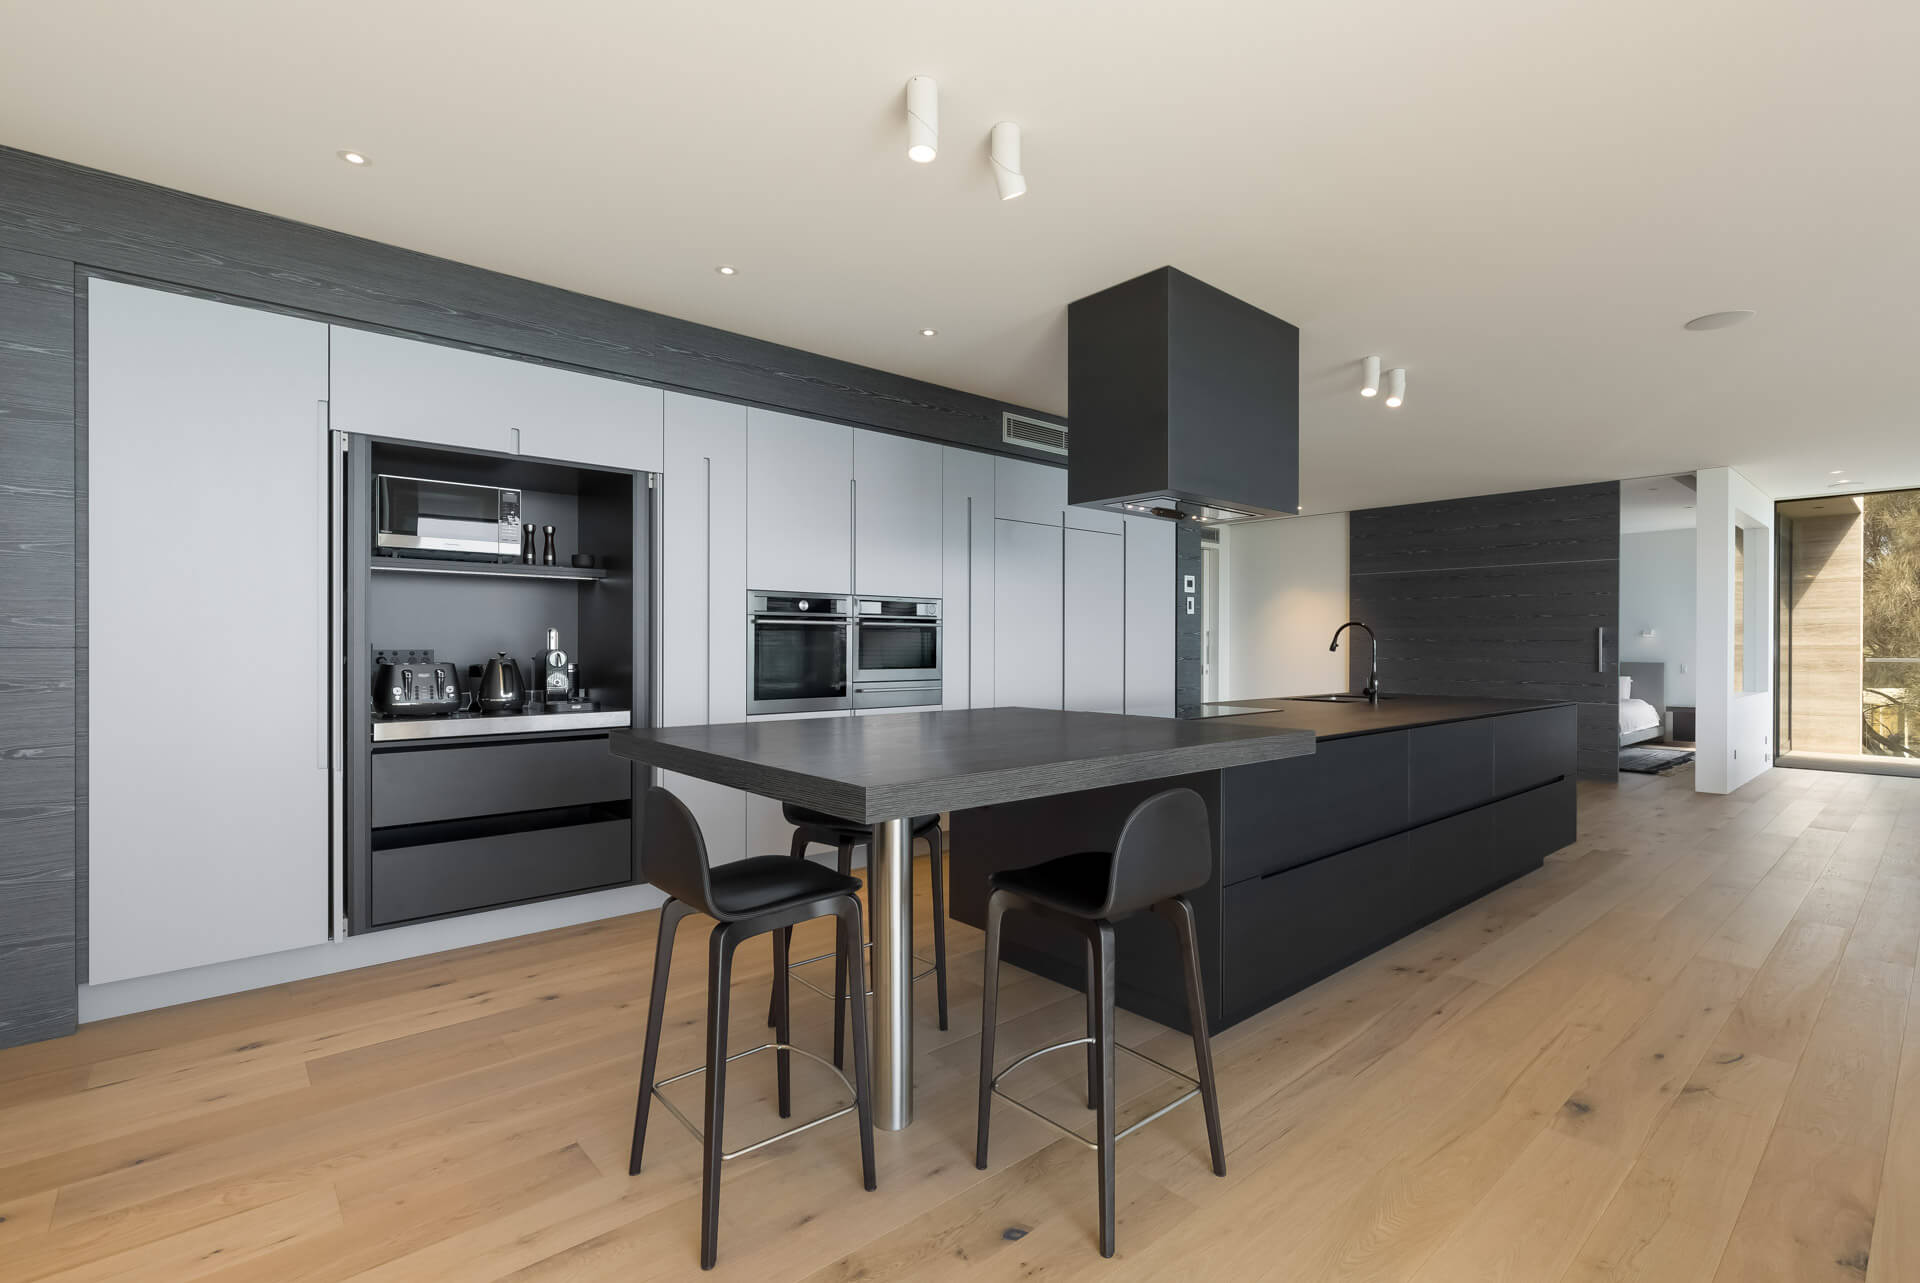 Designer grey and black colour kitchen cabinetry island bench and rangehood with breakfast bar with master bedroom photograph in Brighton bayside home renovation in melbourne